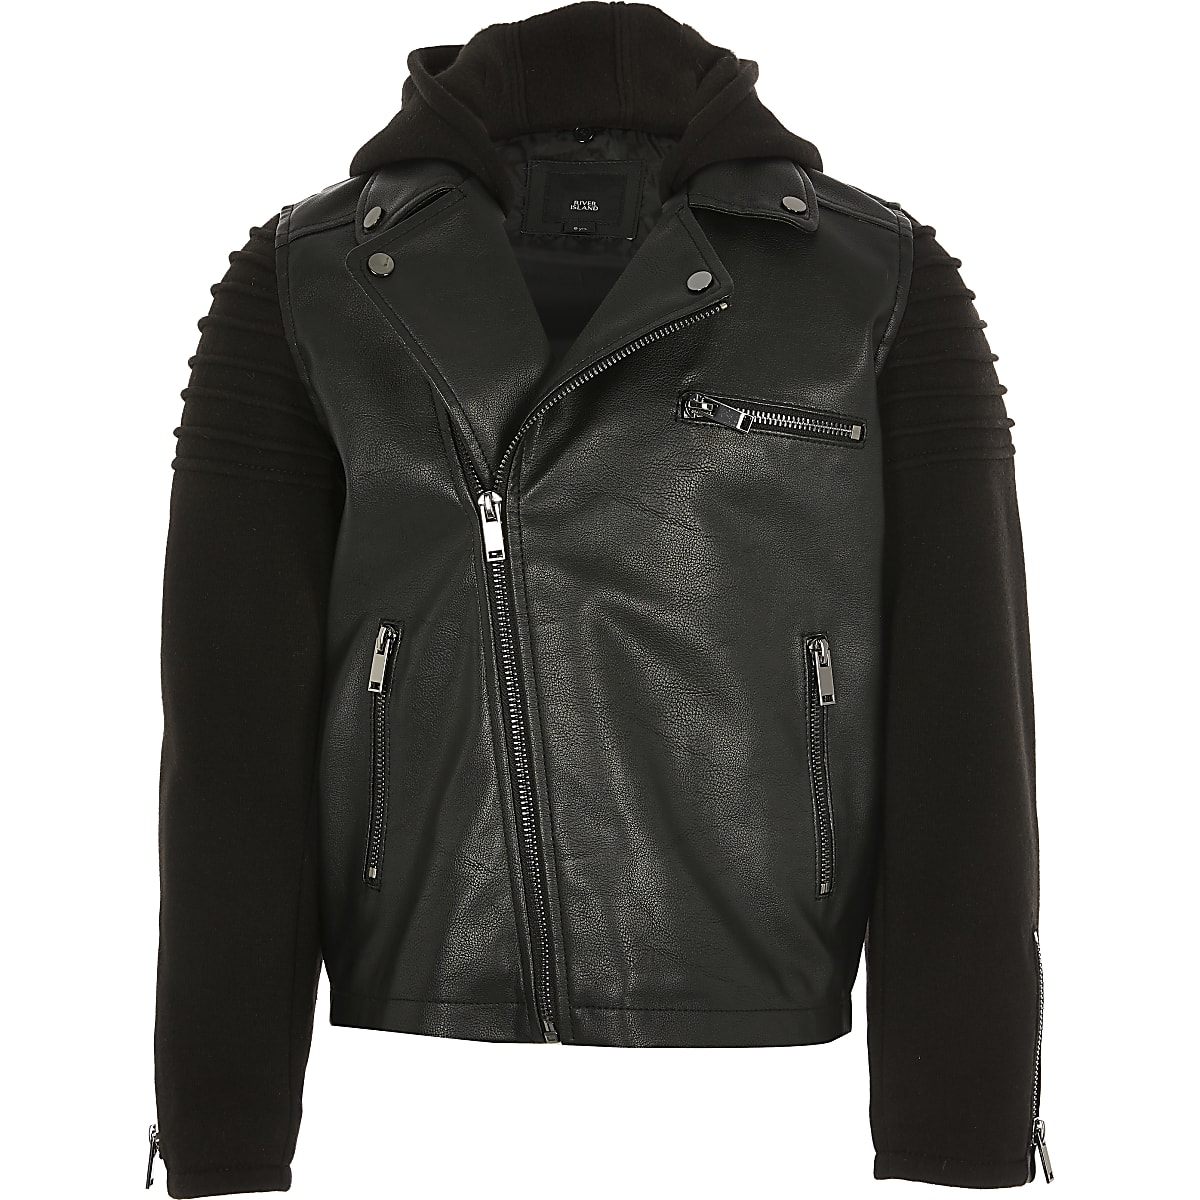 Boys jersey sleeve faux leather biker jacket